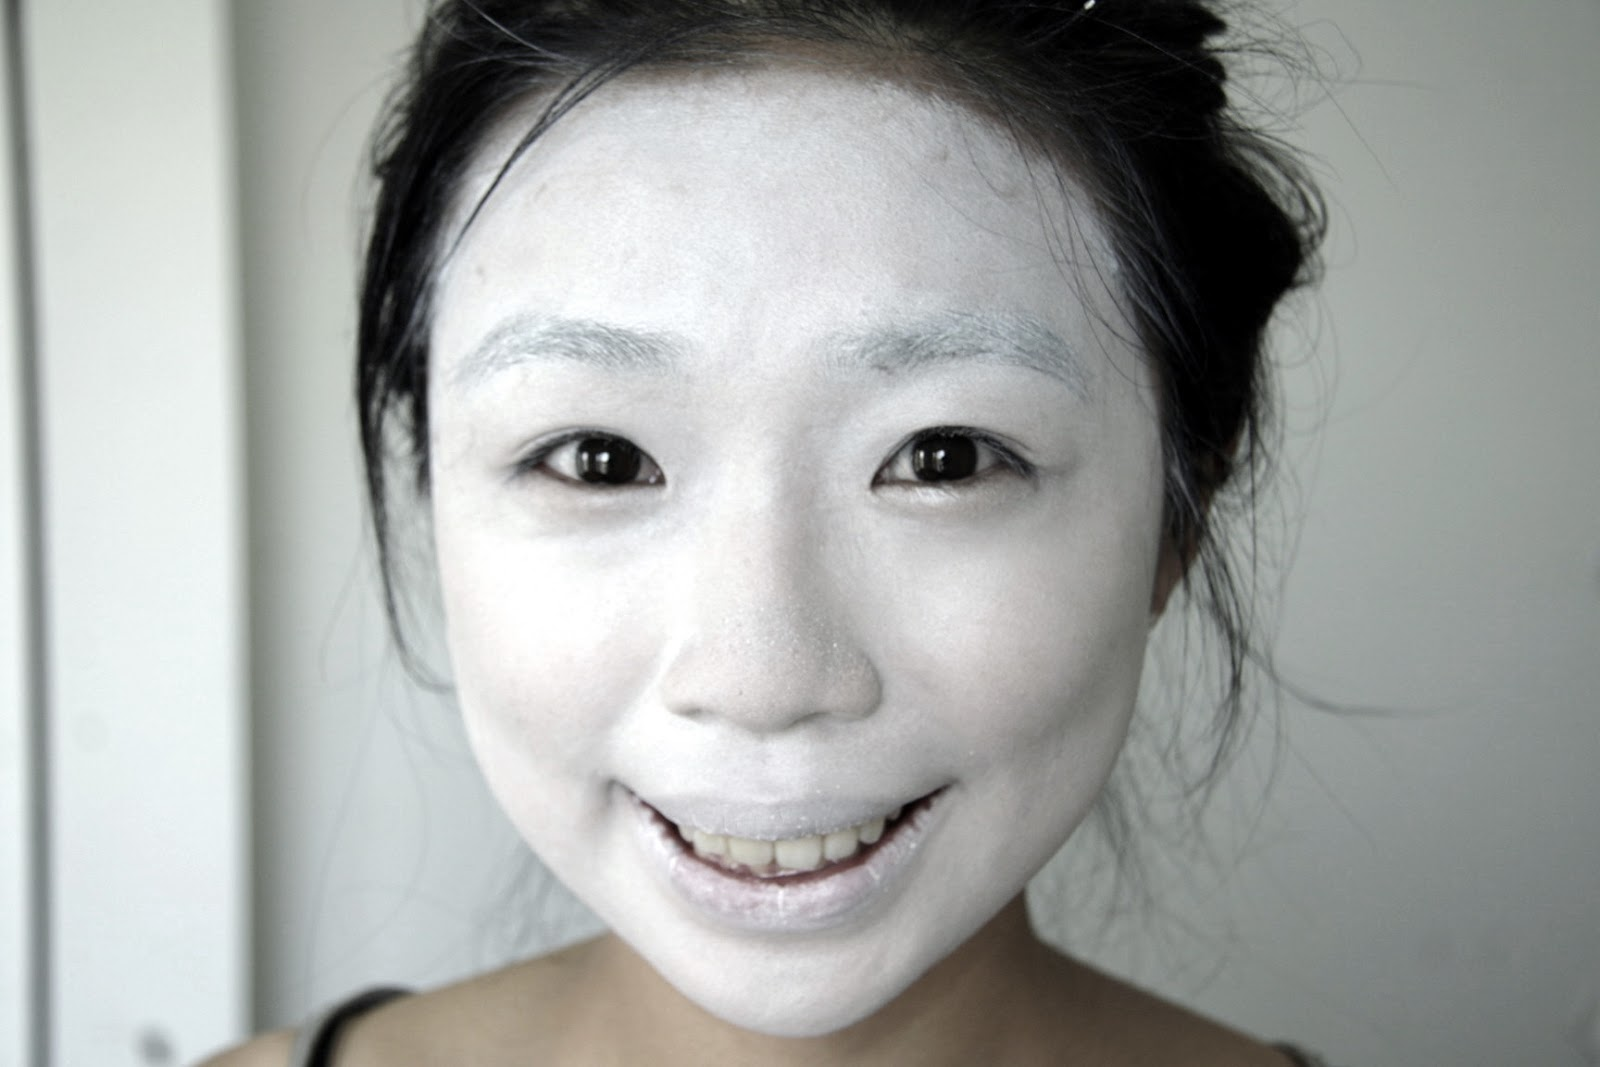 How To Make White Face Paint With Baby Powder